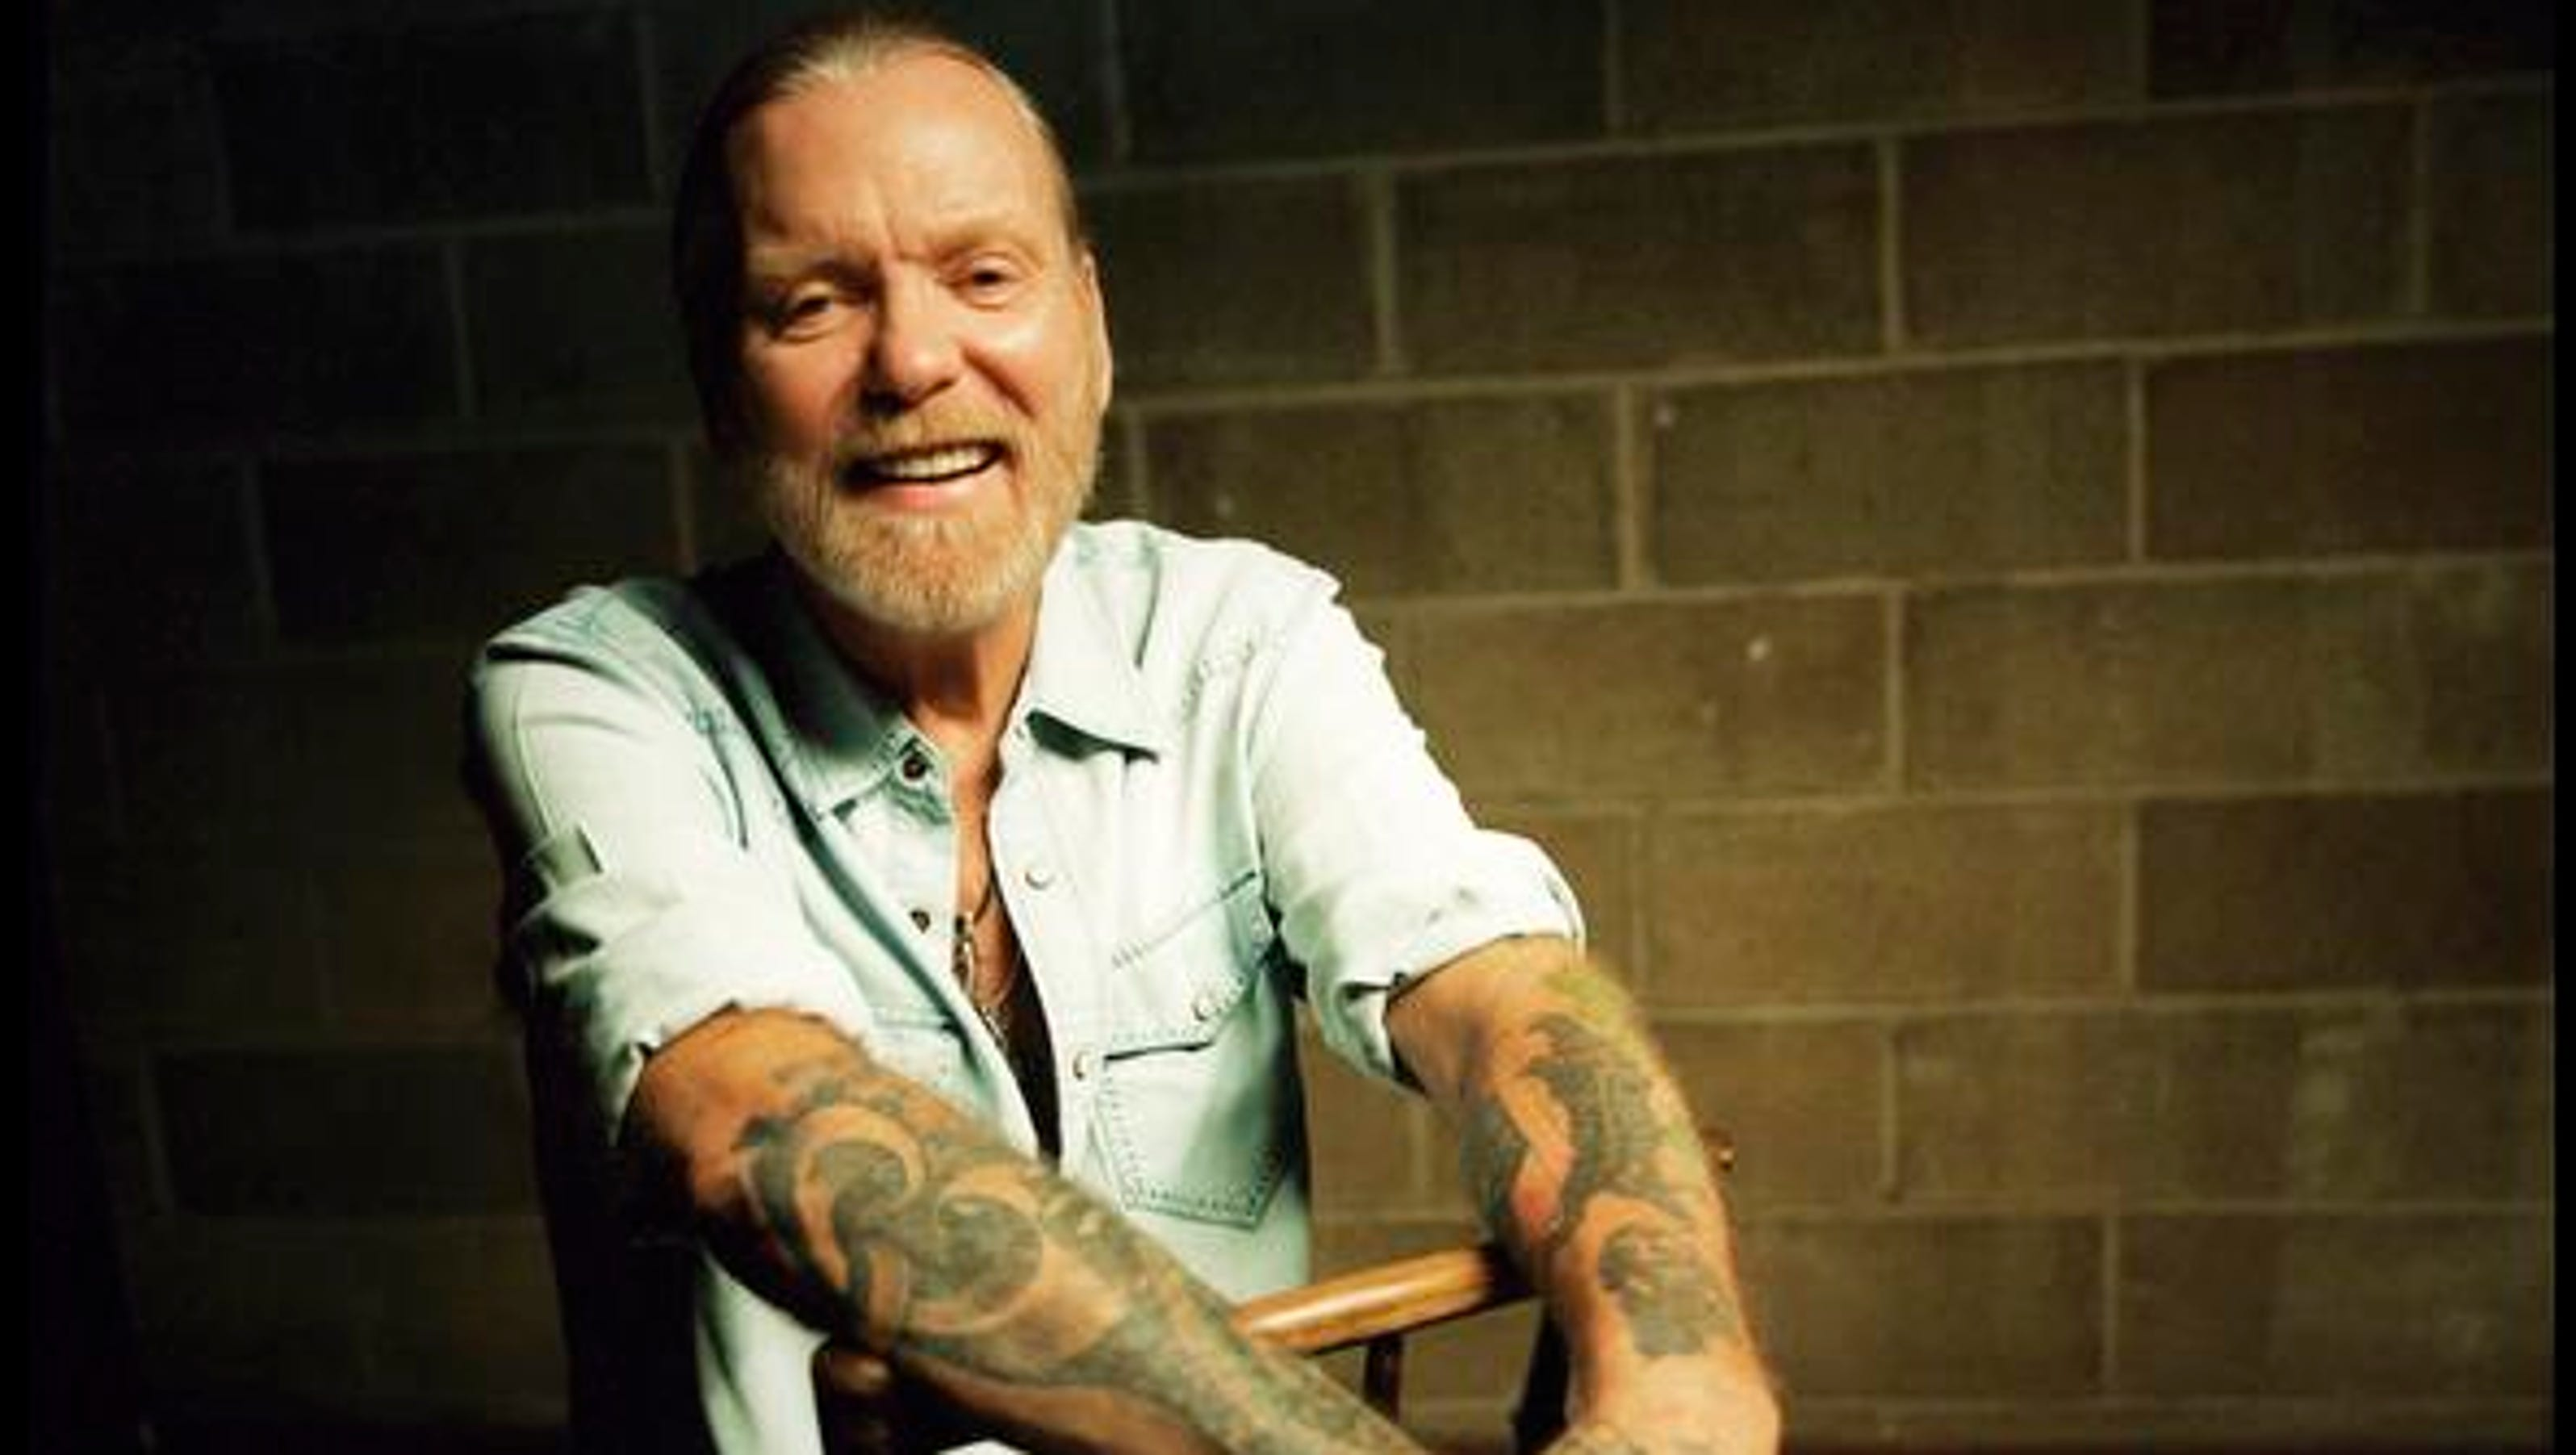 Gregg Allman's musical path leads back to Nashville